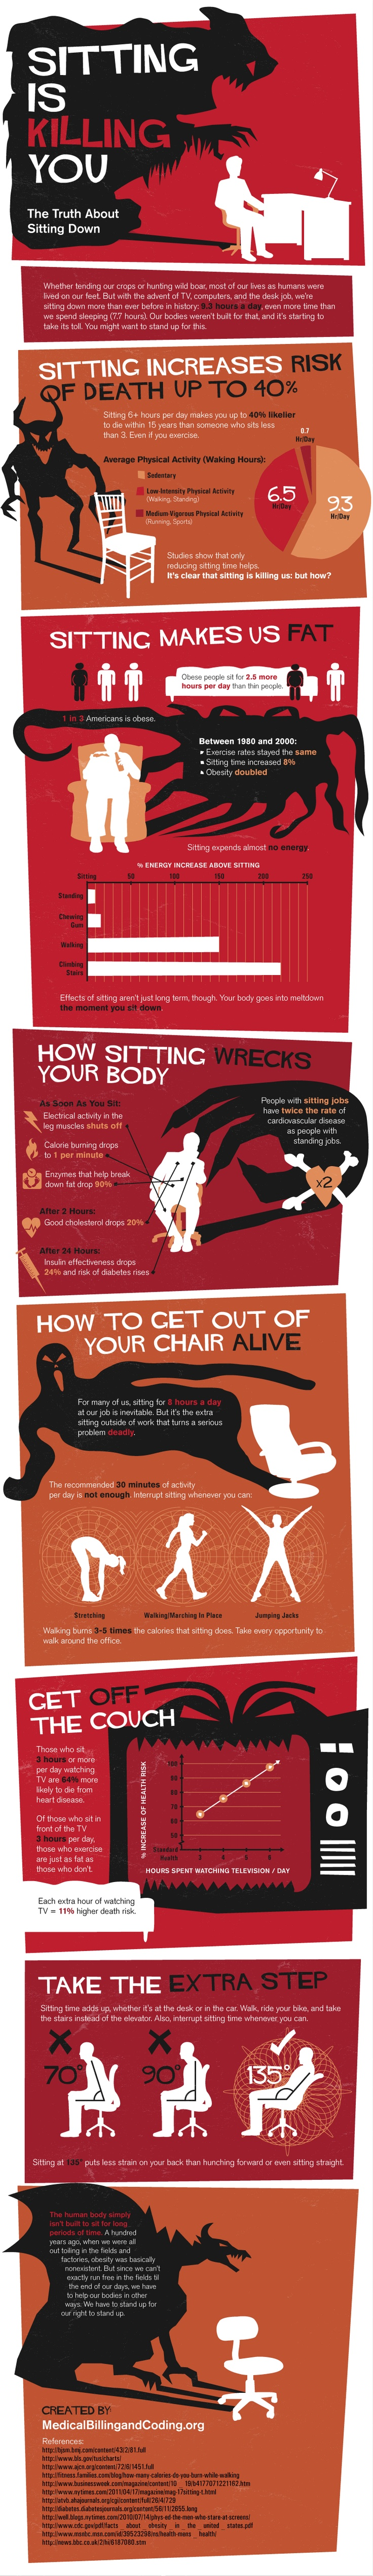 AHHHGGGGGHHHHHHH!Fit, Sitting, Offices, Keep Moving, Stands Desks, Healthy, Kill, Infographic, Info Graphics